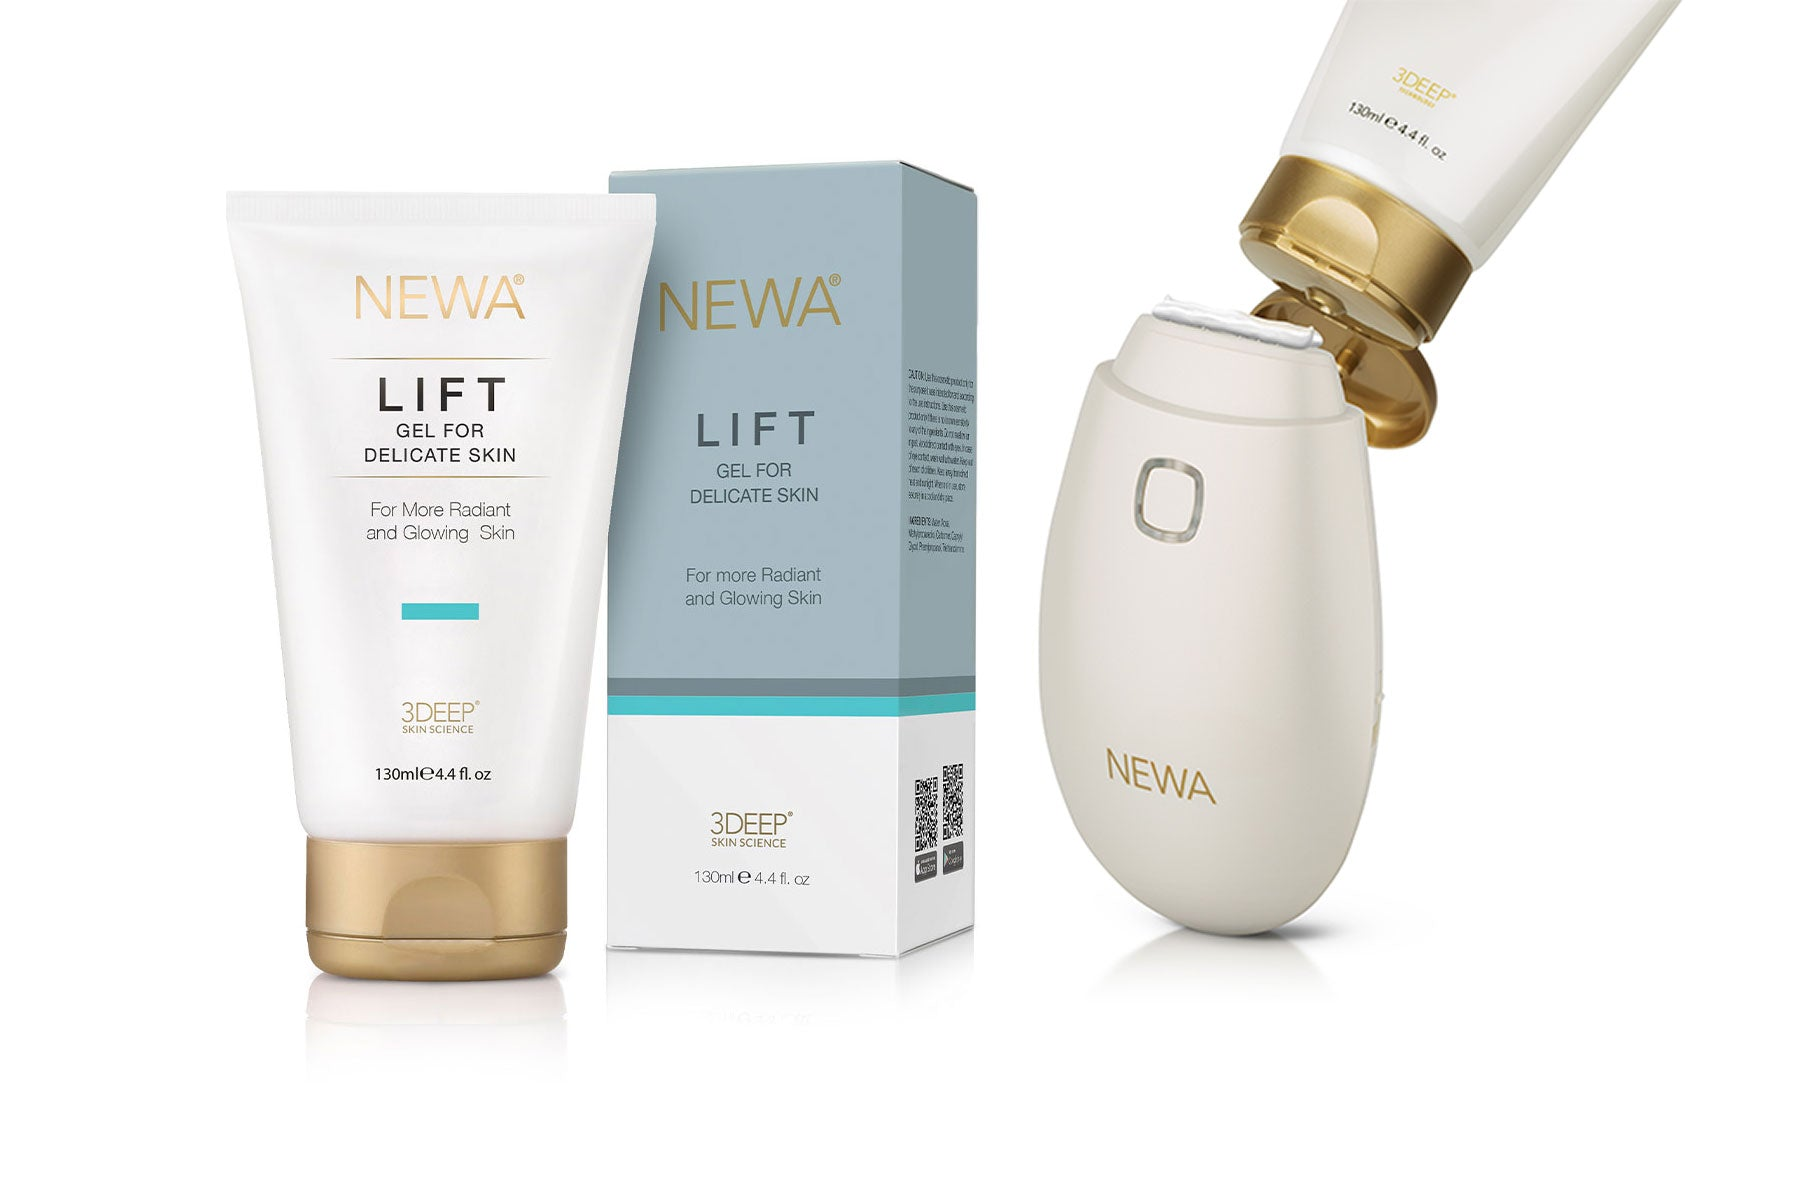 New gel launched for used alongside NEWA